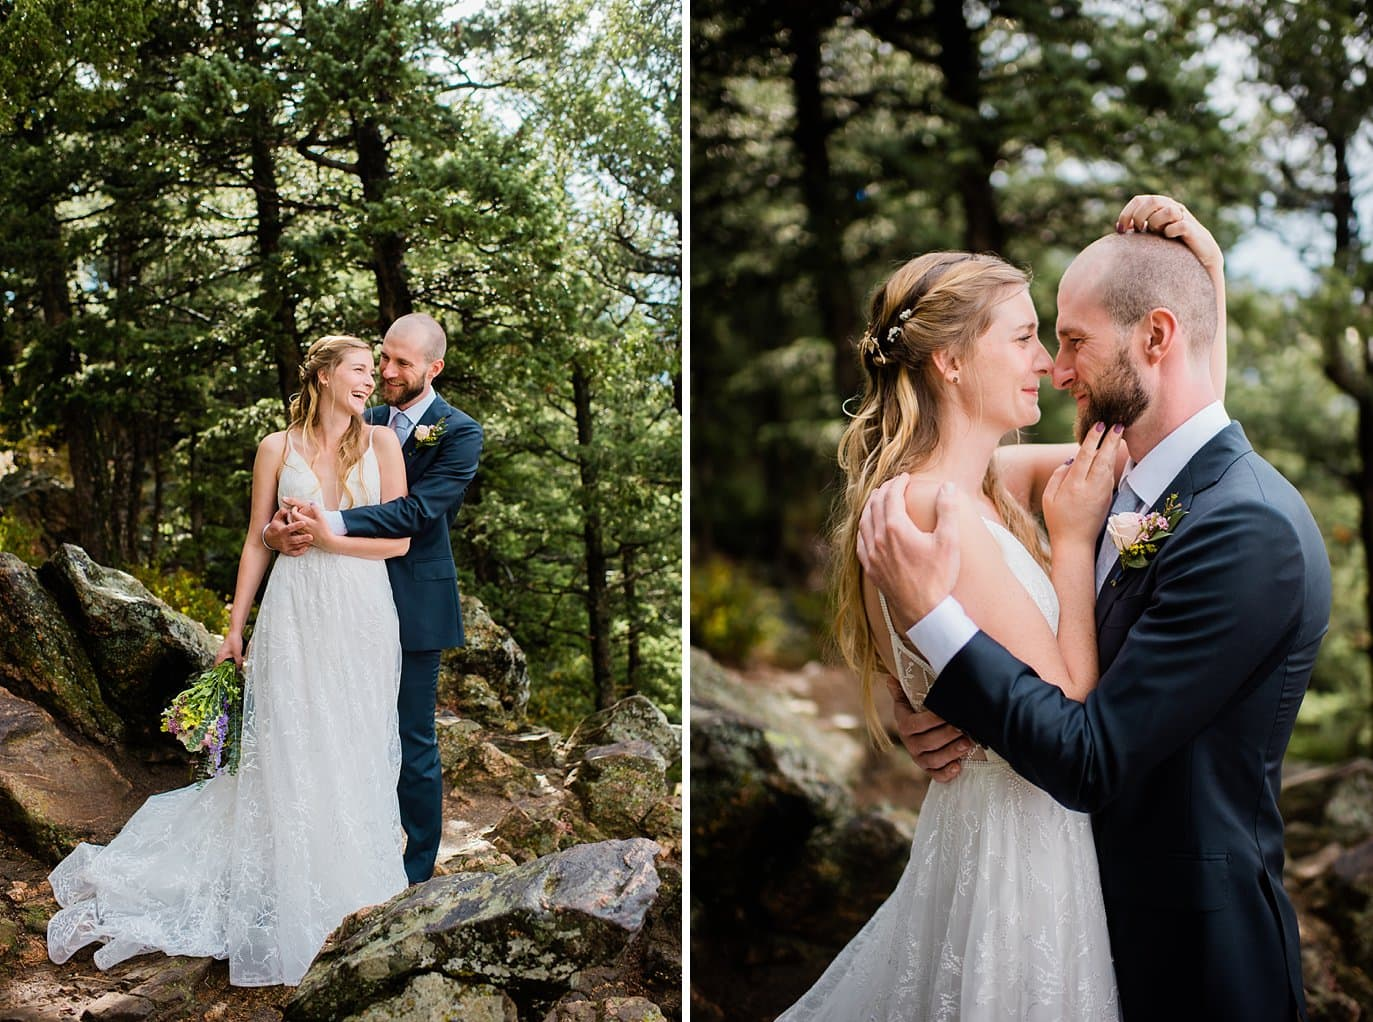 Romantic bride and groom in forest on Colorado wedding day